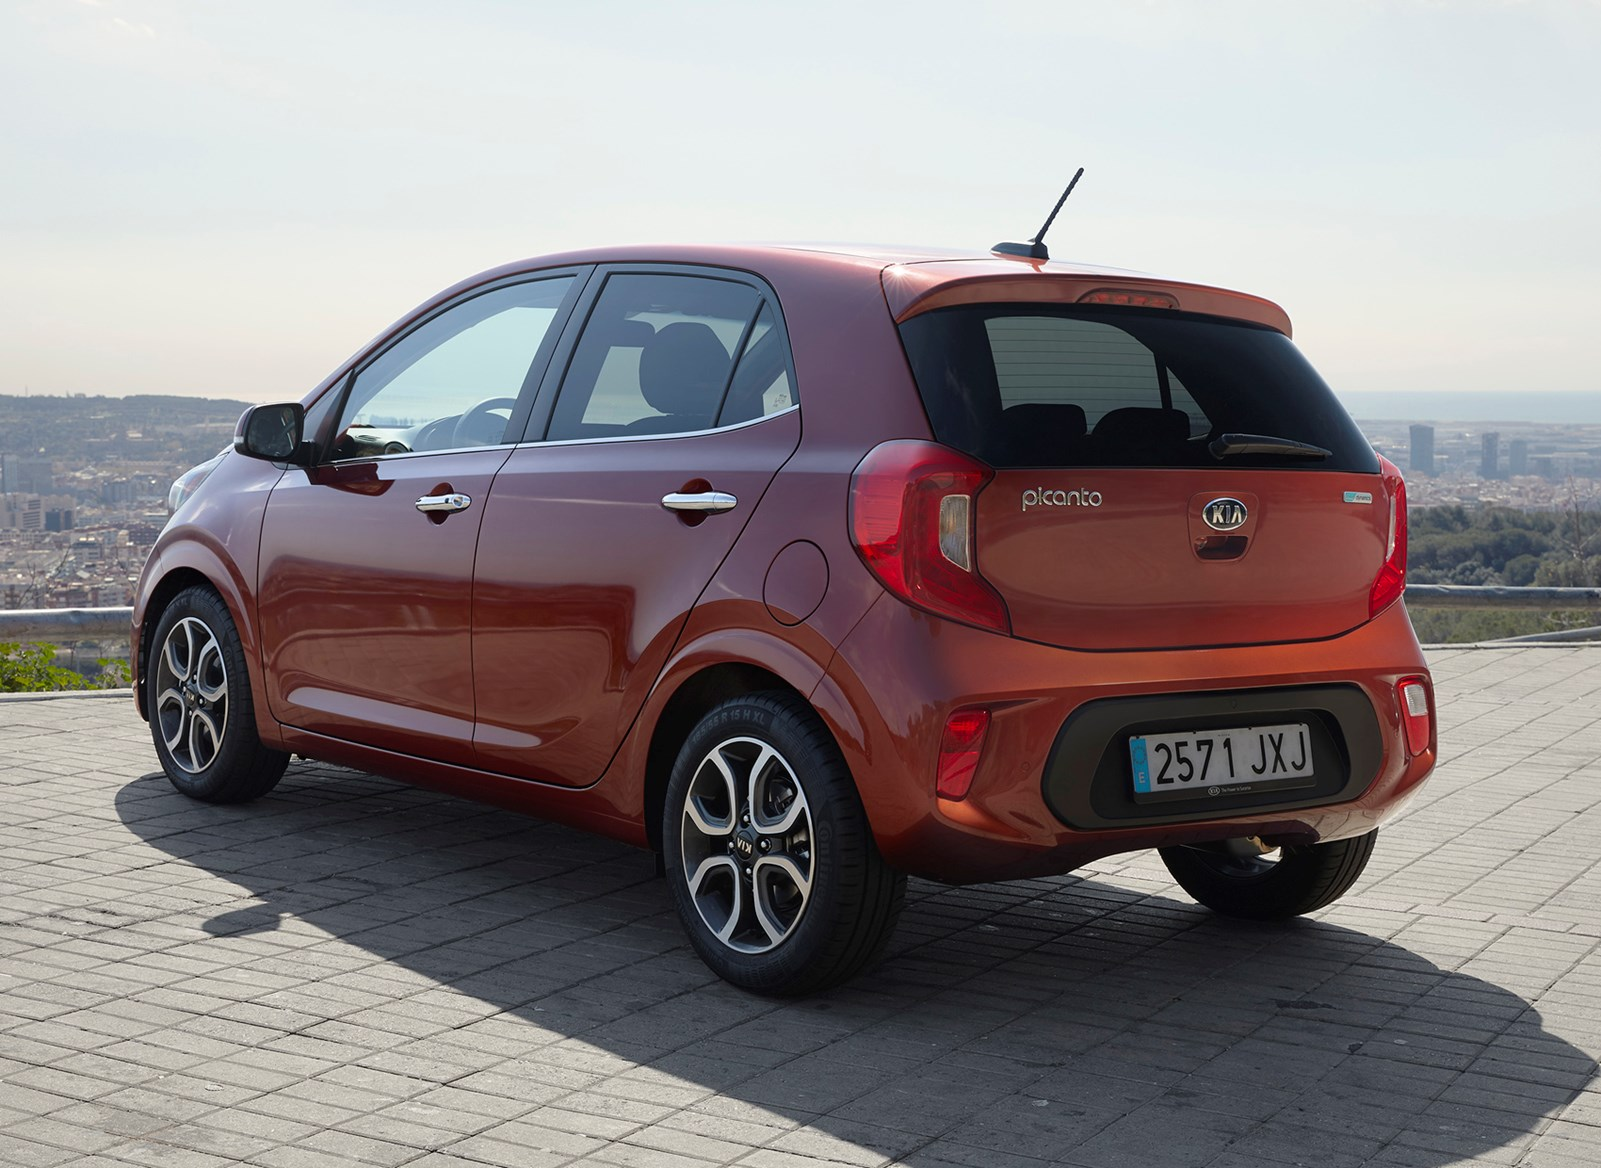 kia picanto hatchback 2017 features equipment and accessories parkers. Black Bedroom Furniture Sets. Home Design Ideas